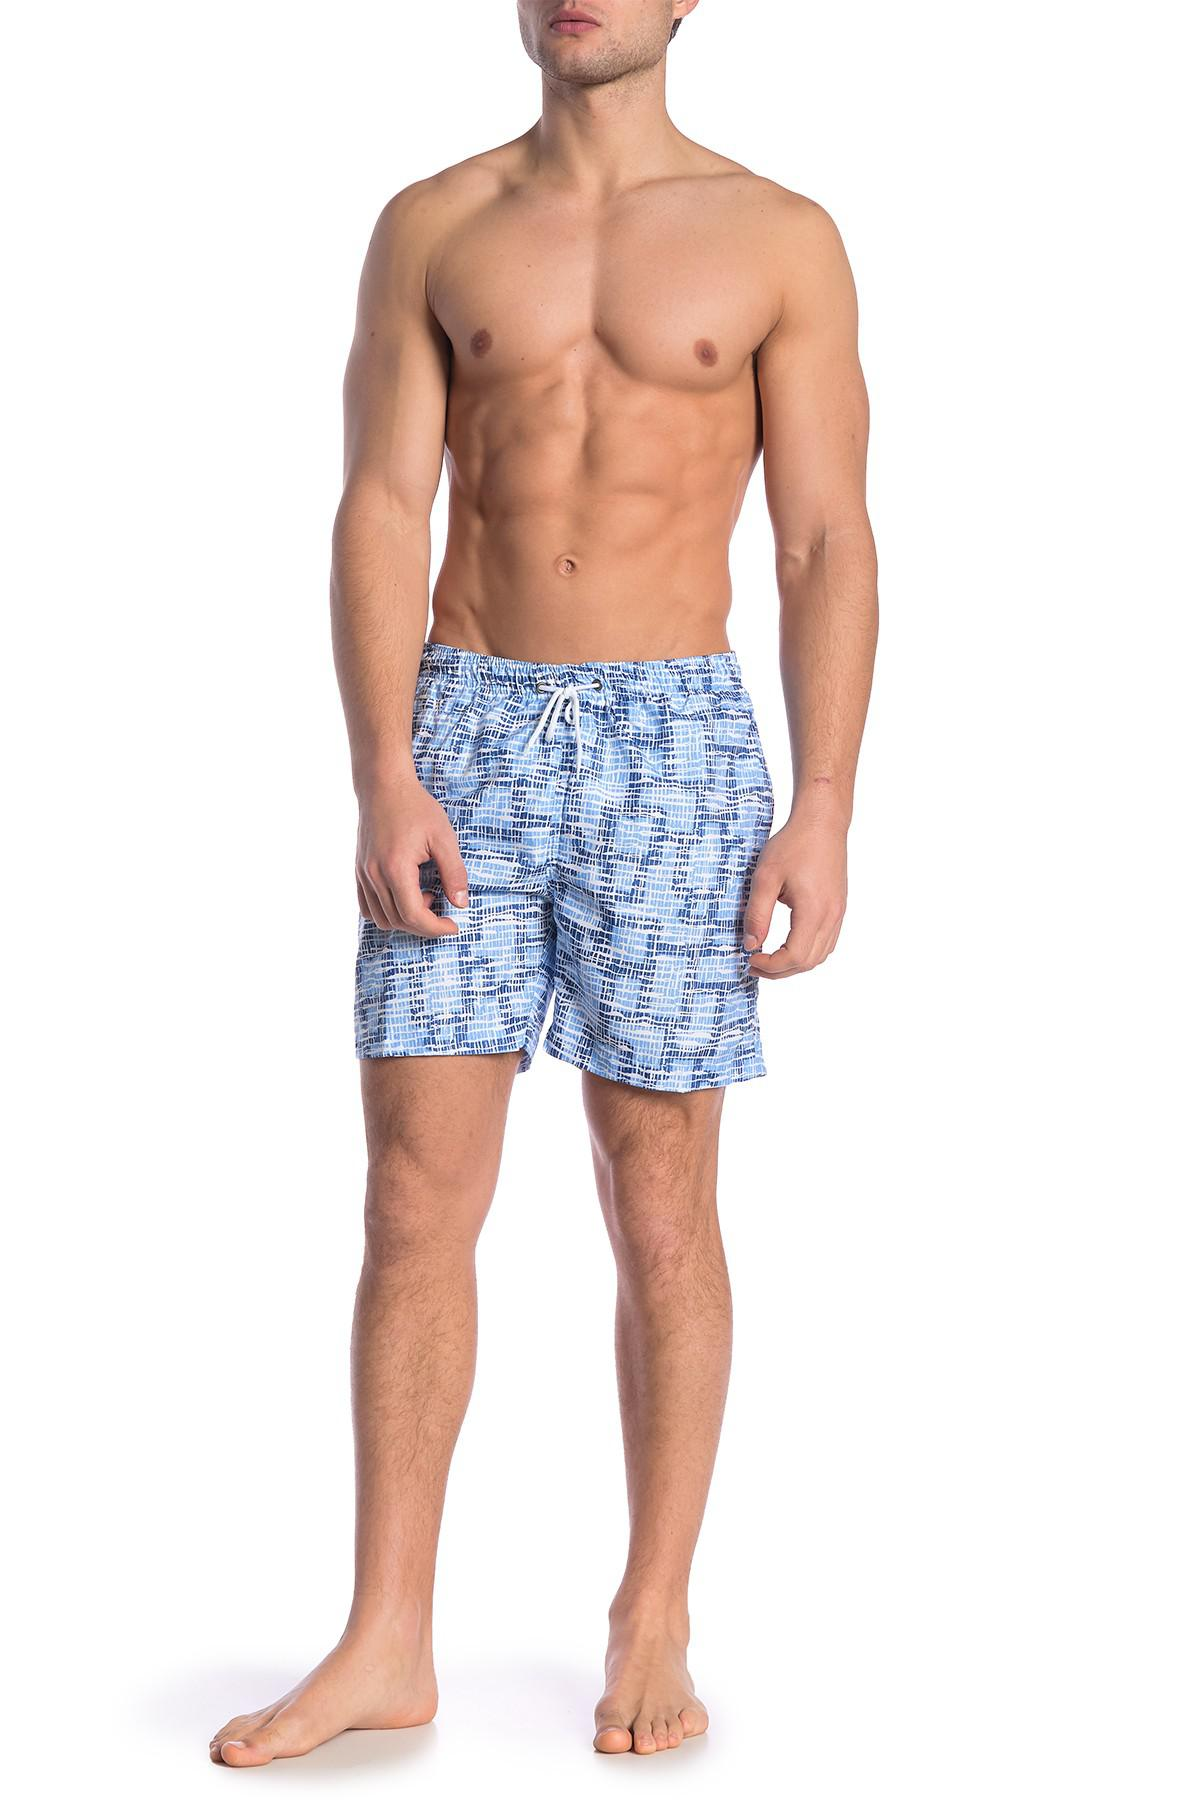 b3a9514bc8 Lyst - TRUNKS SURF AND SWIM CO Sano Printed Swim Trunks in Blue for Men